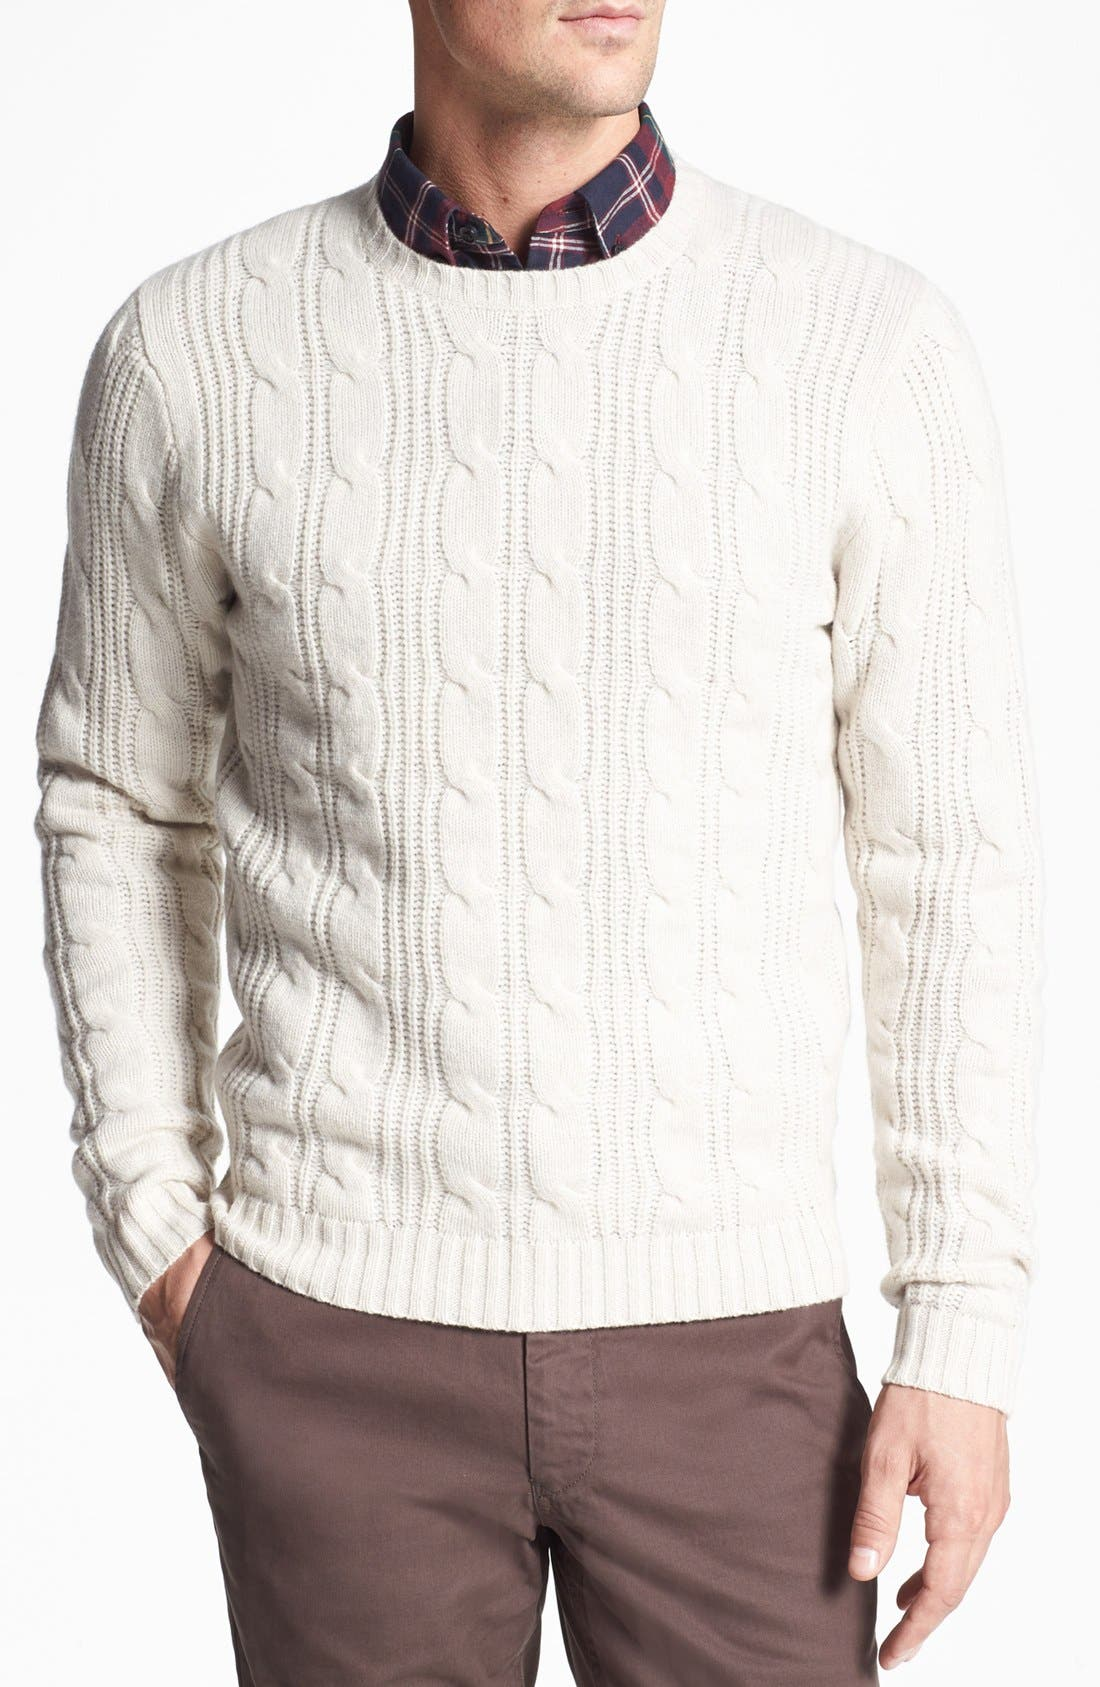 Main Image - Wallin & Bros. Cable Knit Sweater